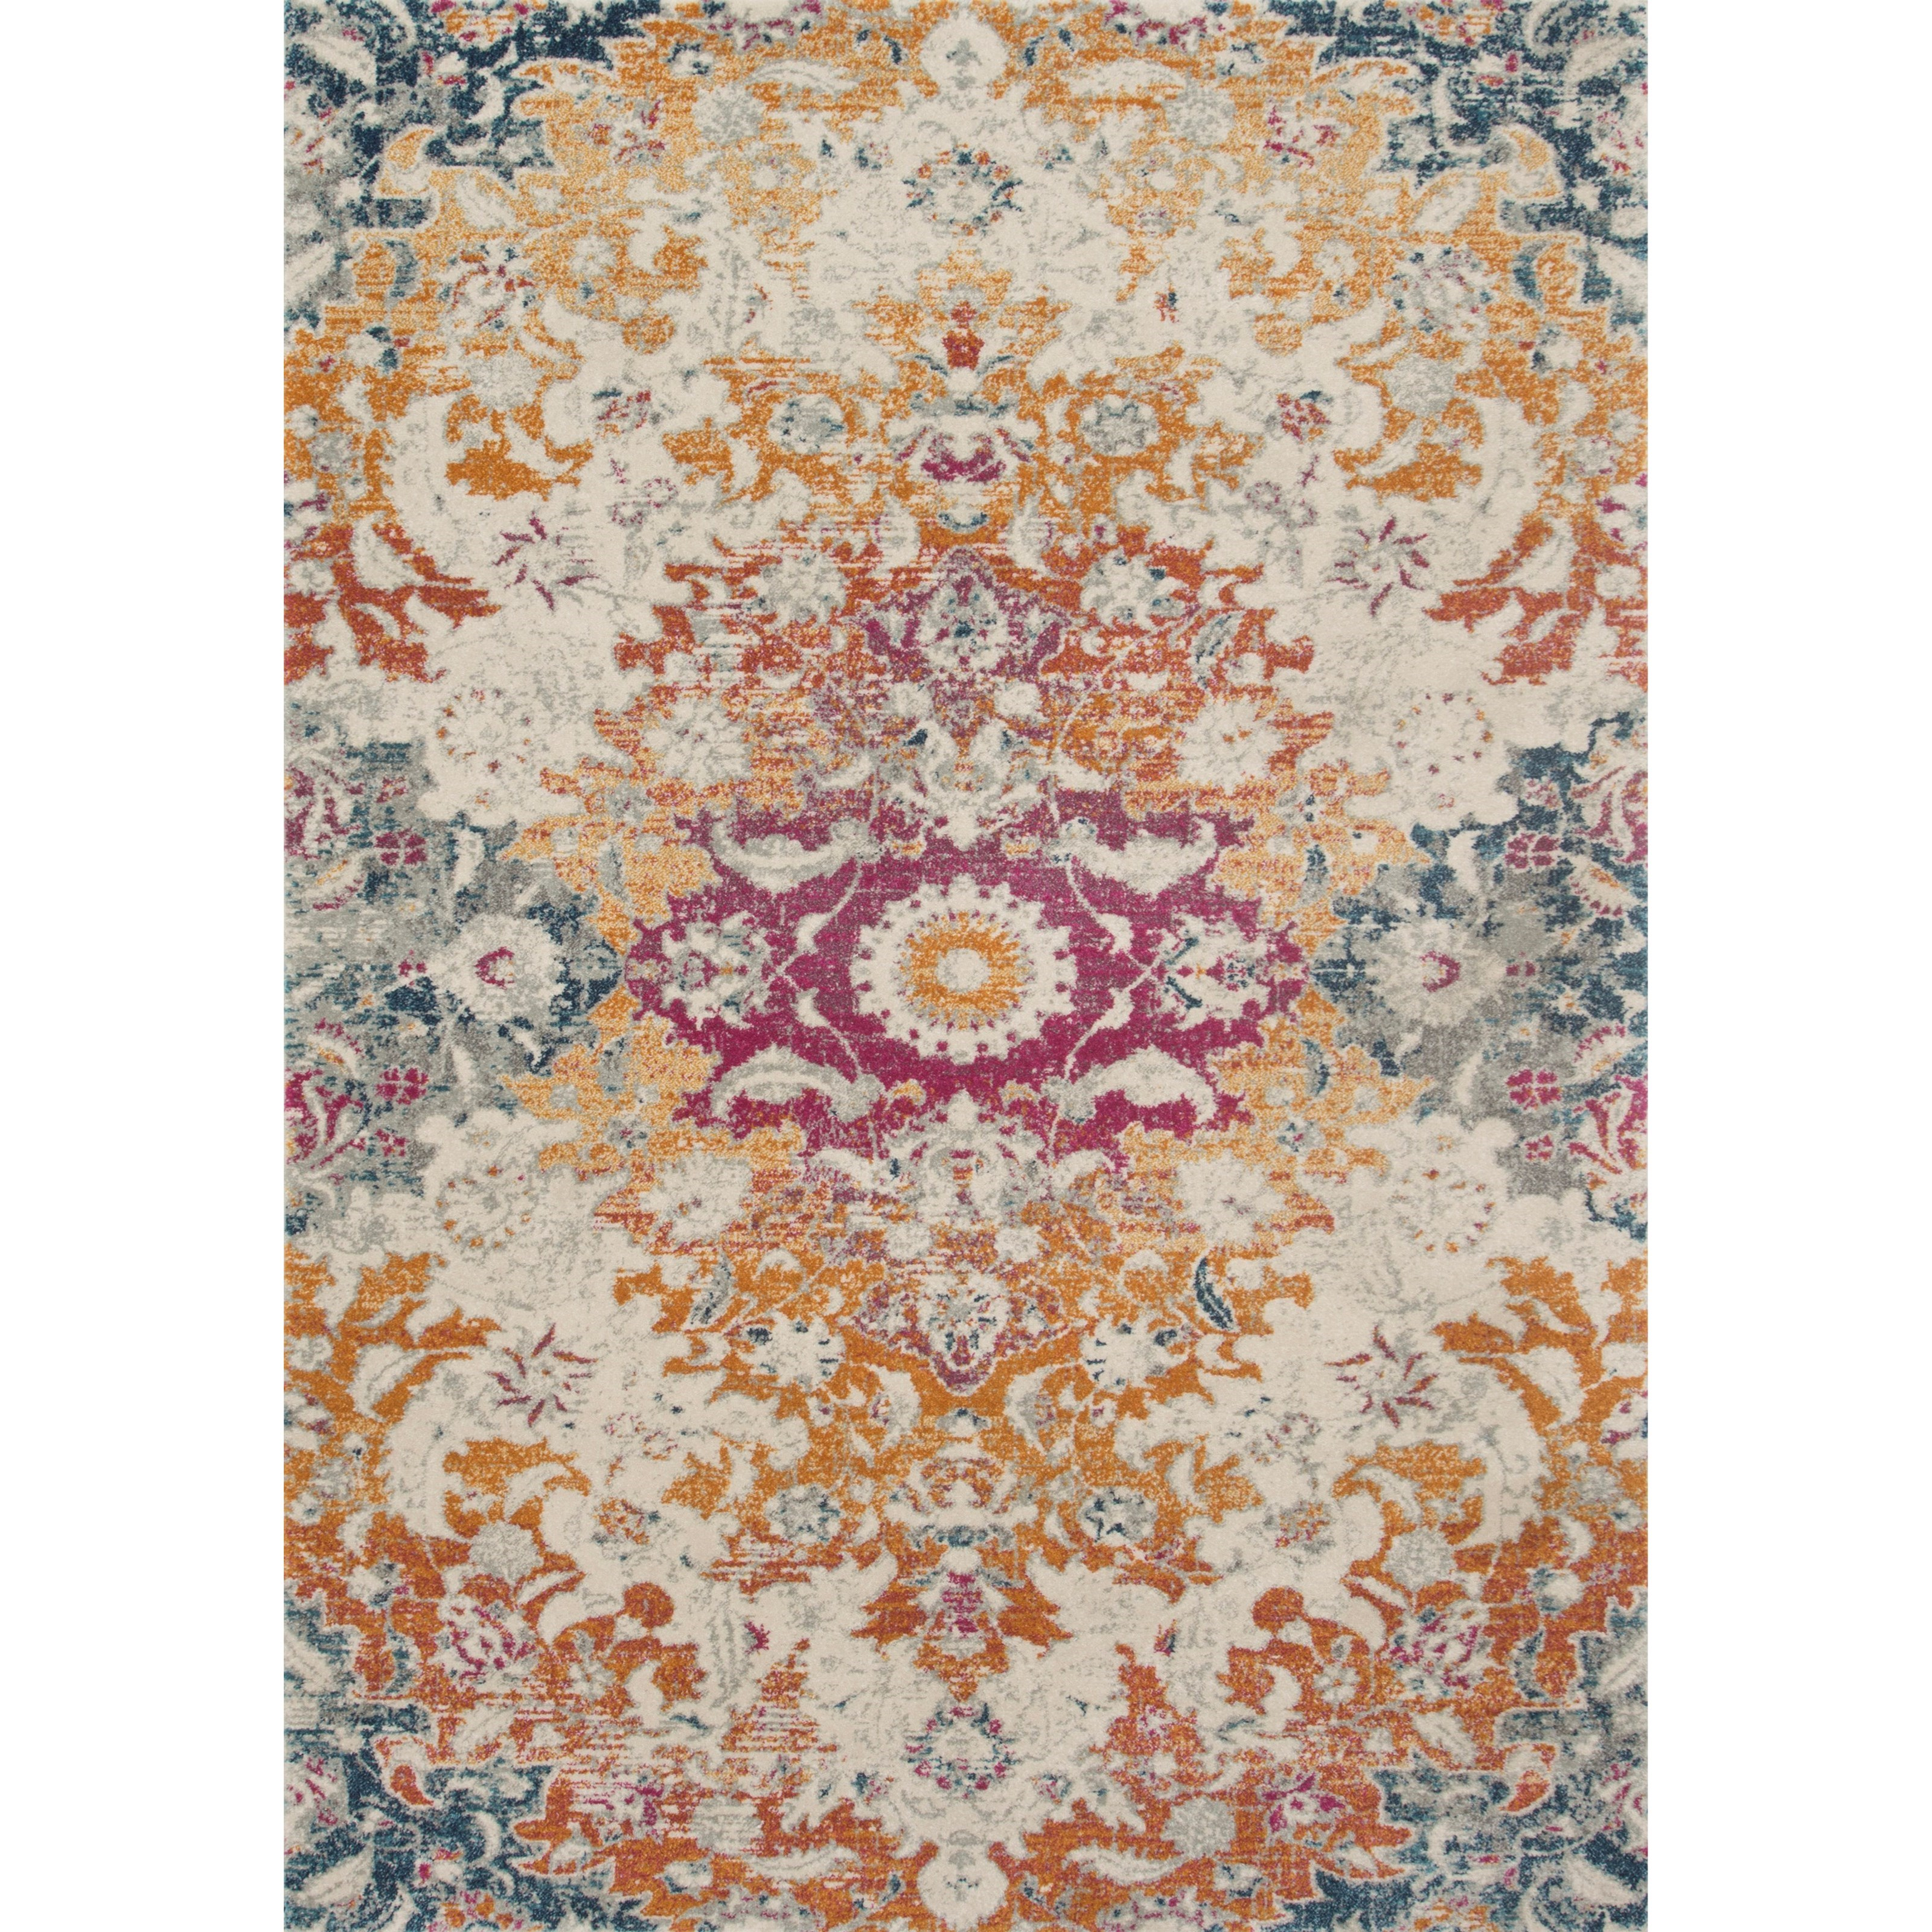 "Zehla 1'6"" x 1'6""  Ivory / Fiesta Rug by Loloi Rugs at Sprintz Furniture"